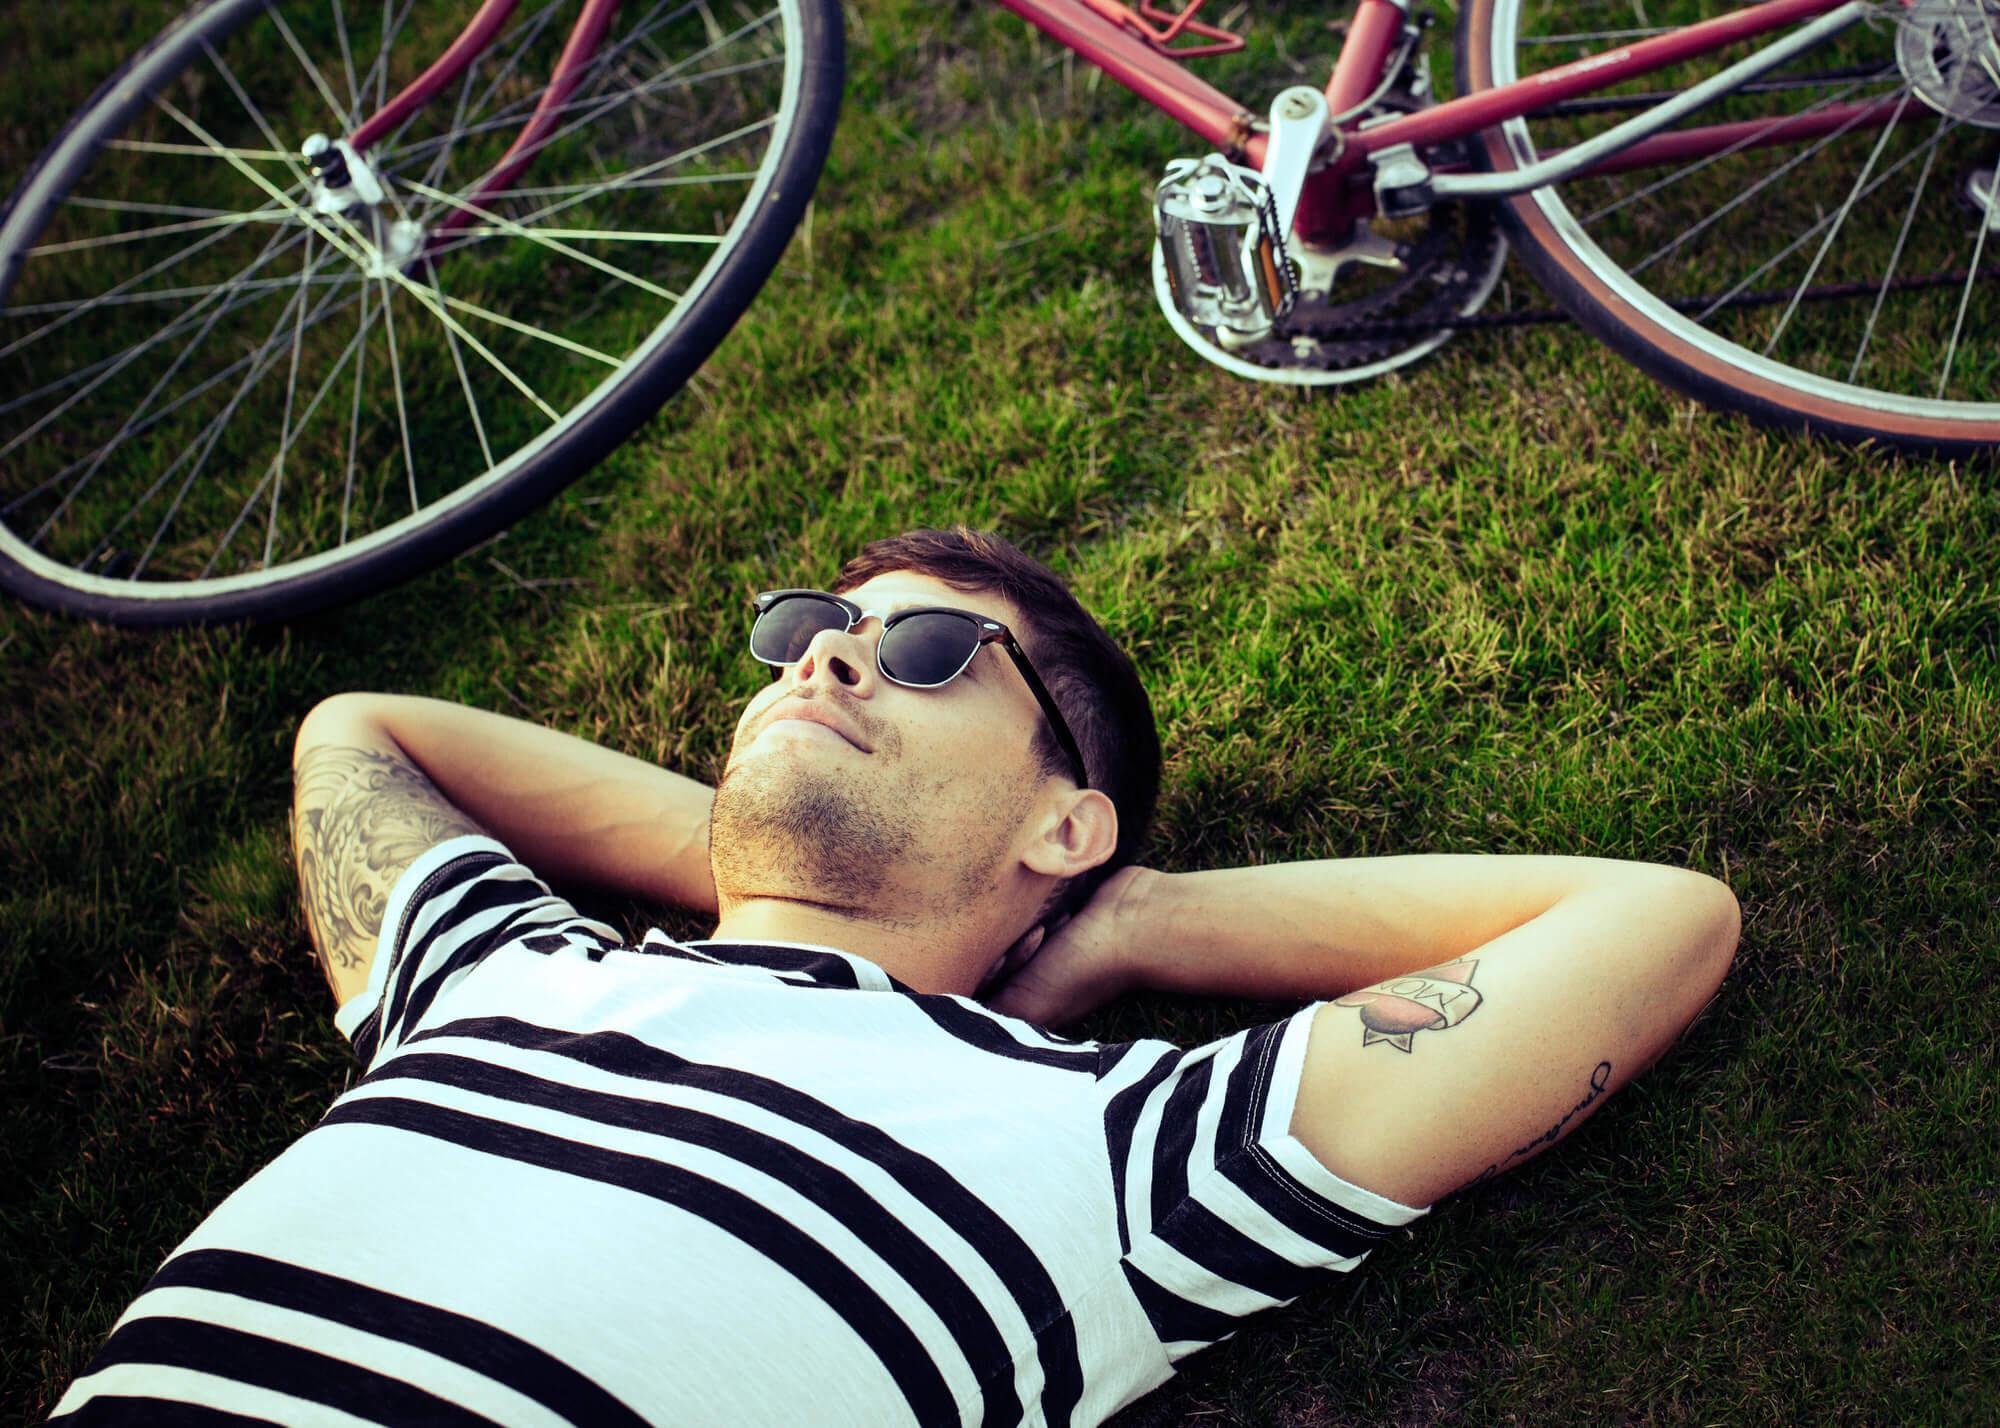 Man laying in grass with bike